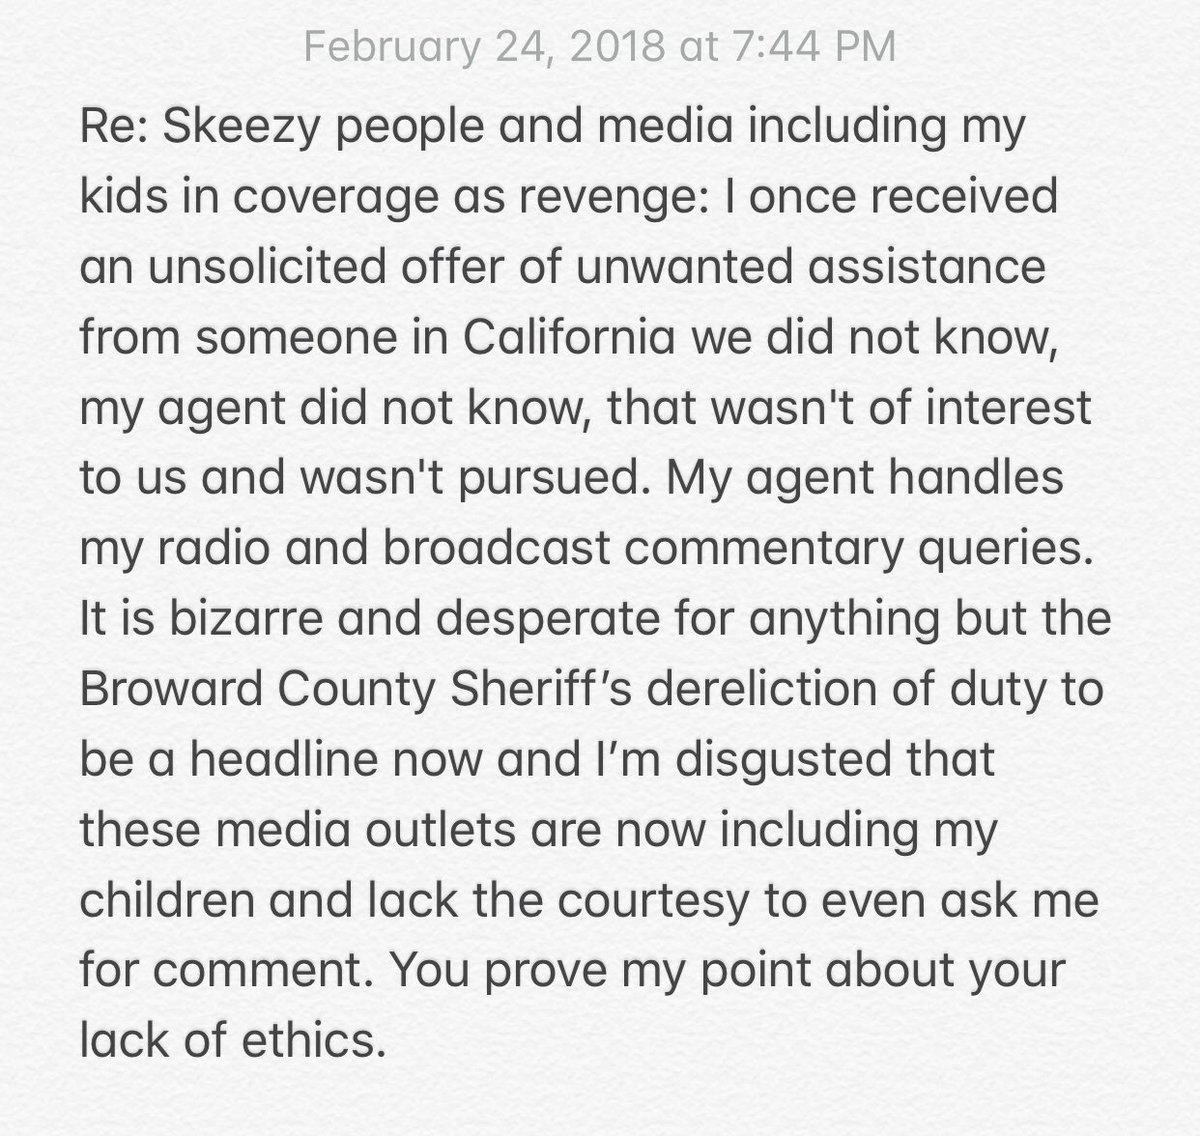 My only comment on a bit of trash I saw. I wish as much effort was focused on the Broward Sheriff's dereliction of duty.